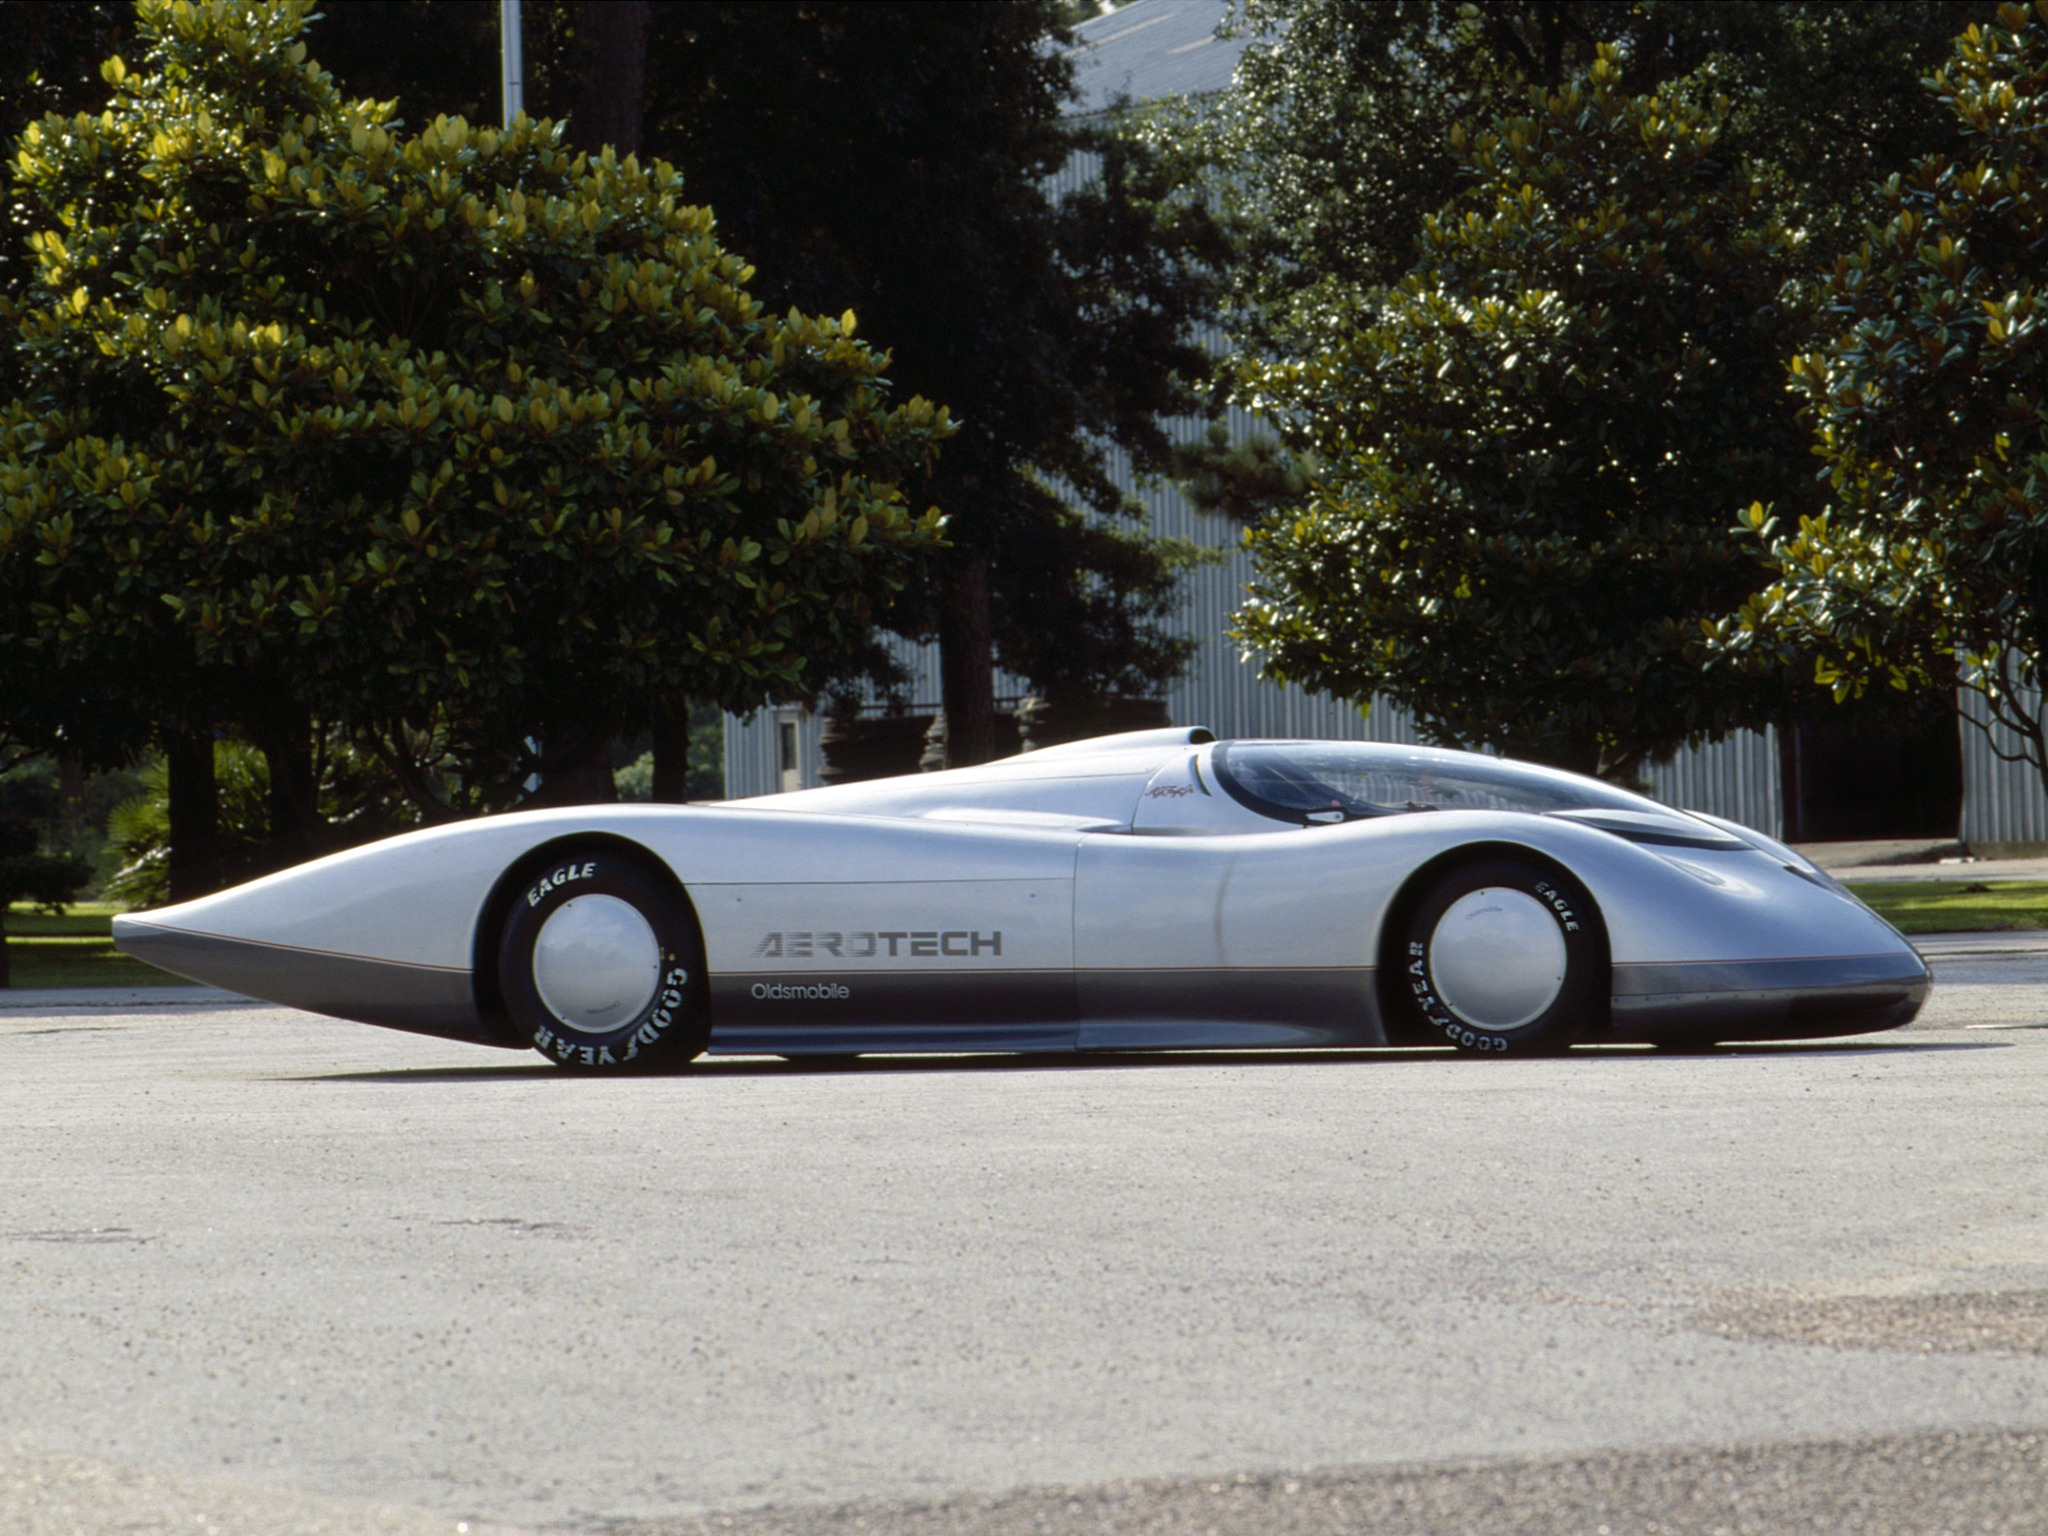 Oldsmobile Aerotech 1987 1992 Old Concept Cars HD Wallpapers Download free images and photos [musssic.tk]